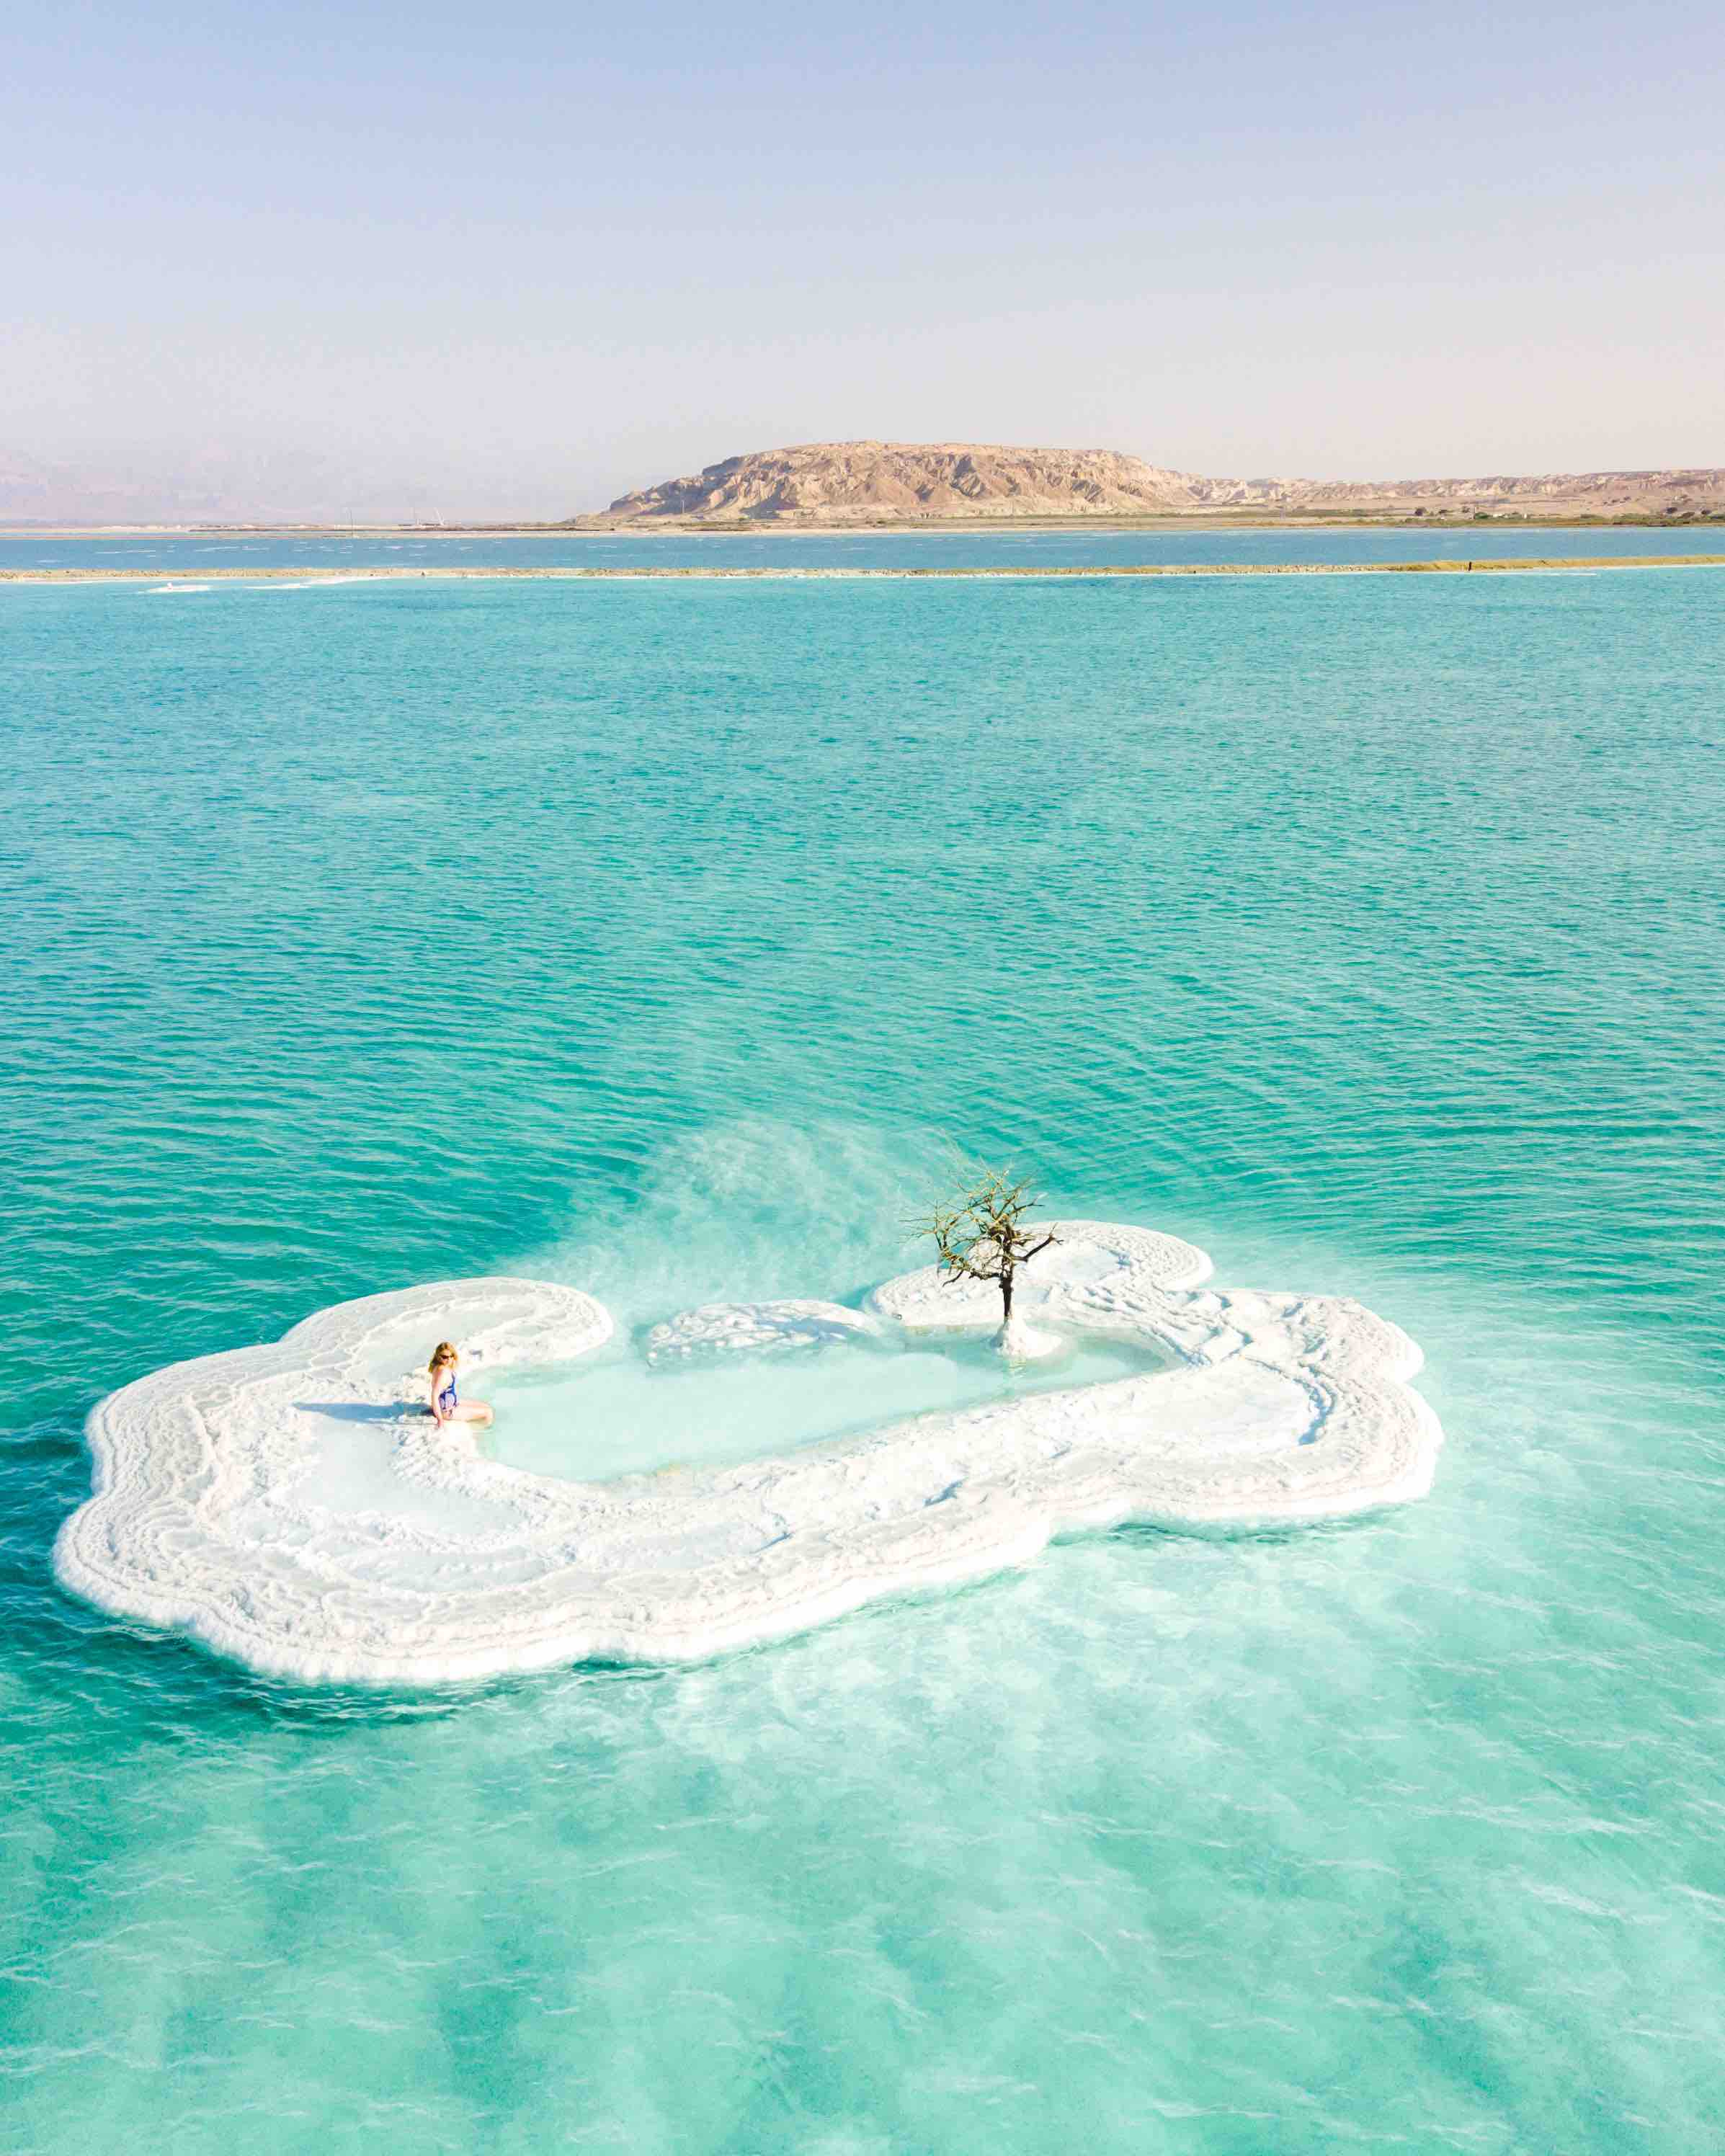 Things to do in the Dead Sea - The Dead Sea Tree